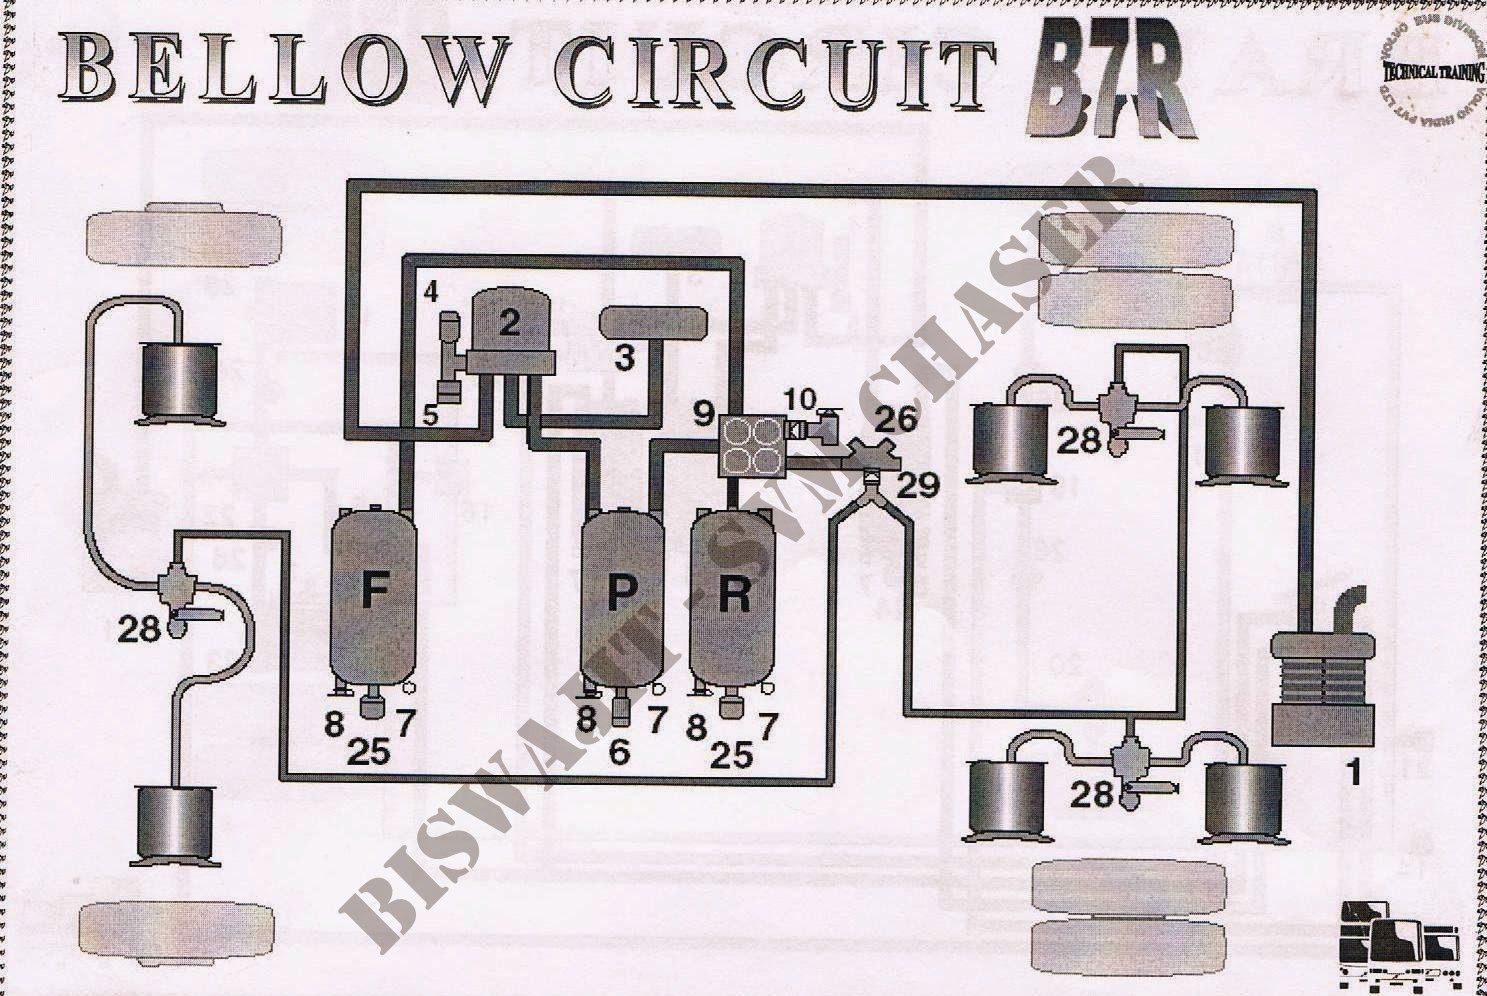 Volvo B7r Wiring Diagram Opinions About 78 Scottsdale Headlight Bellow Circuit And Air Suspension Biswajit Svm Chaser Semi Truck